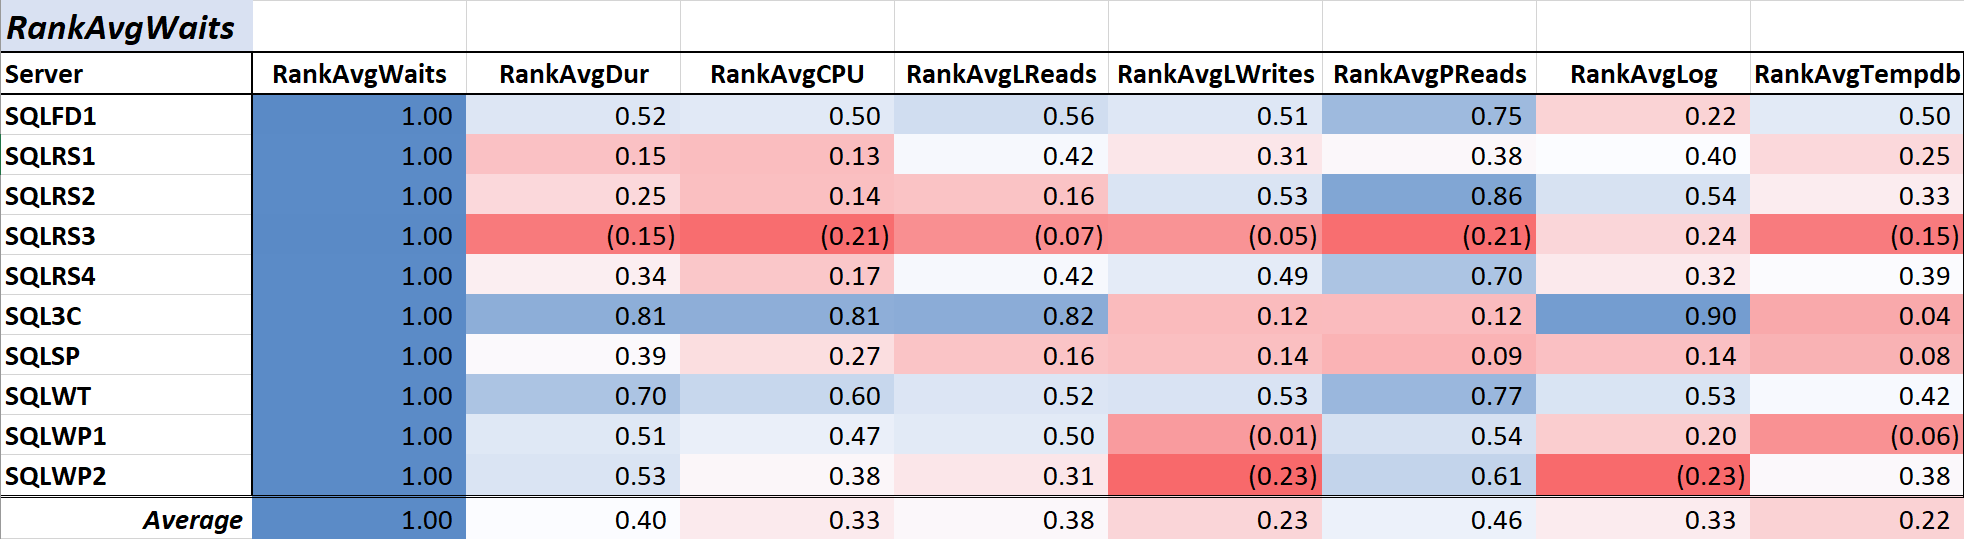 Table 1: Correlation with Avg Query Wait Time (ms)